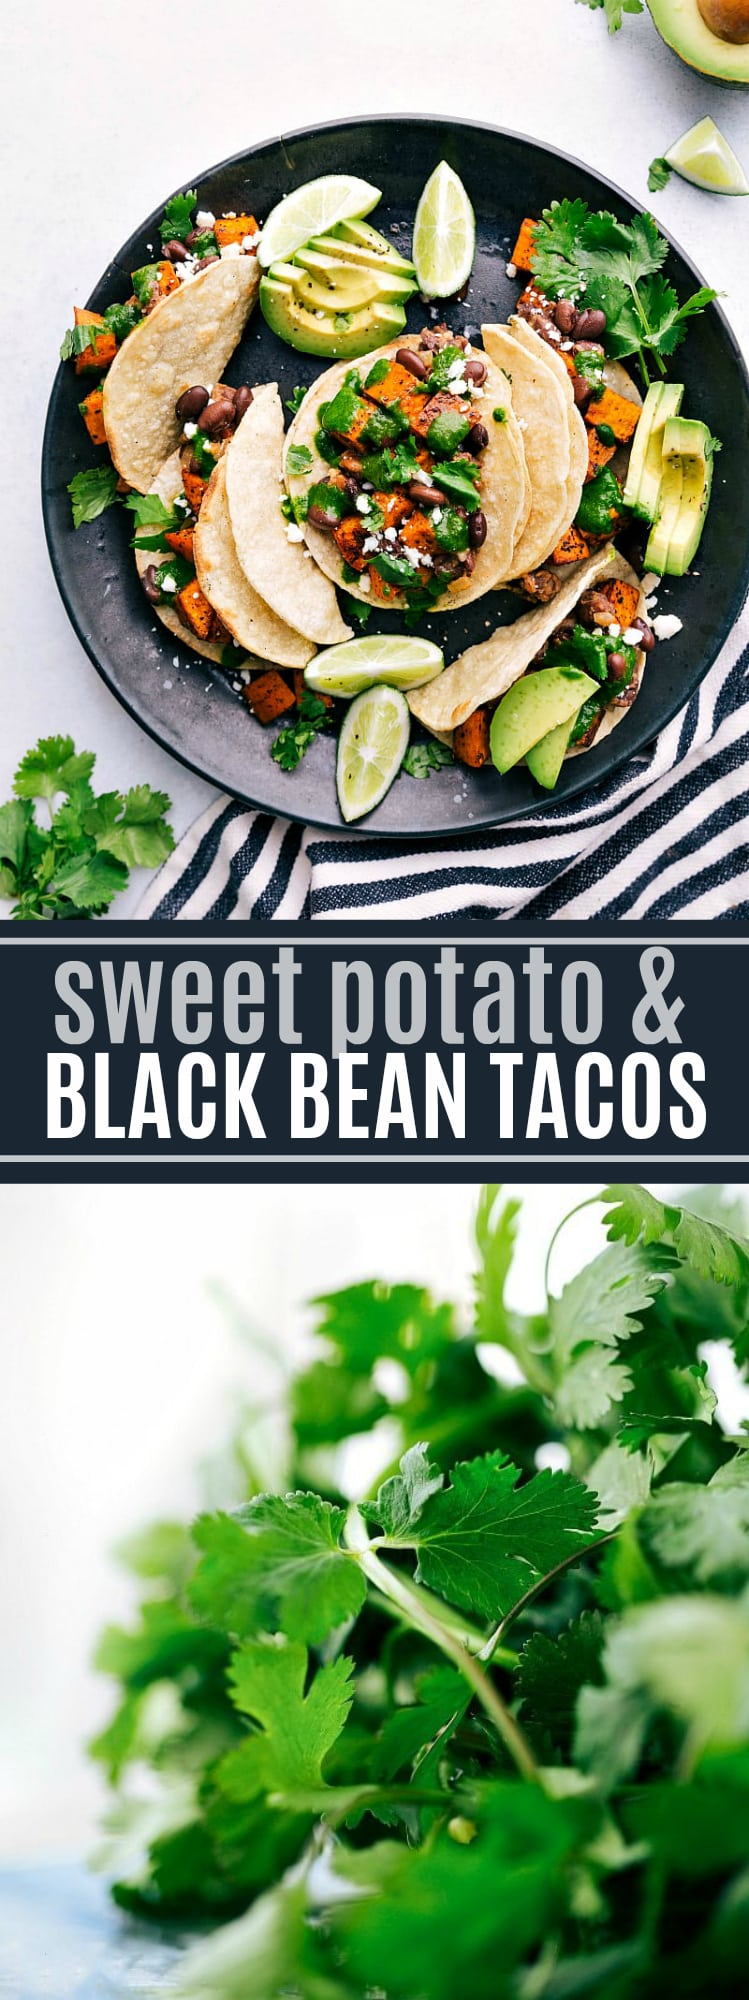 Roasted sweet potatoes and black bean tacos served with a delicious cilantro-lime sauce -- these are the BEST easy vegetarian tacos! via chelseasmessyapron.com #vegetarian #veggies #blackbean #best #easy #kidfriendly #sweet #potato #fall #food #recipe #dinner #avocado #cilantro